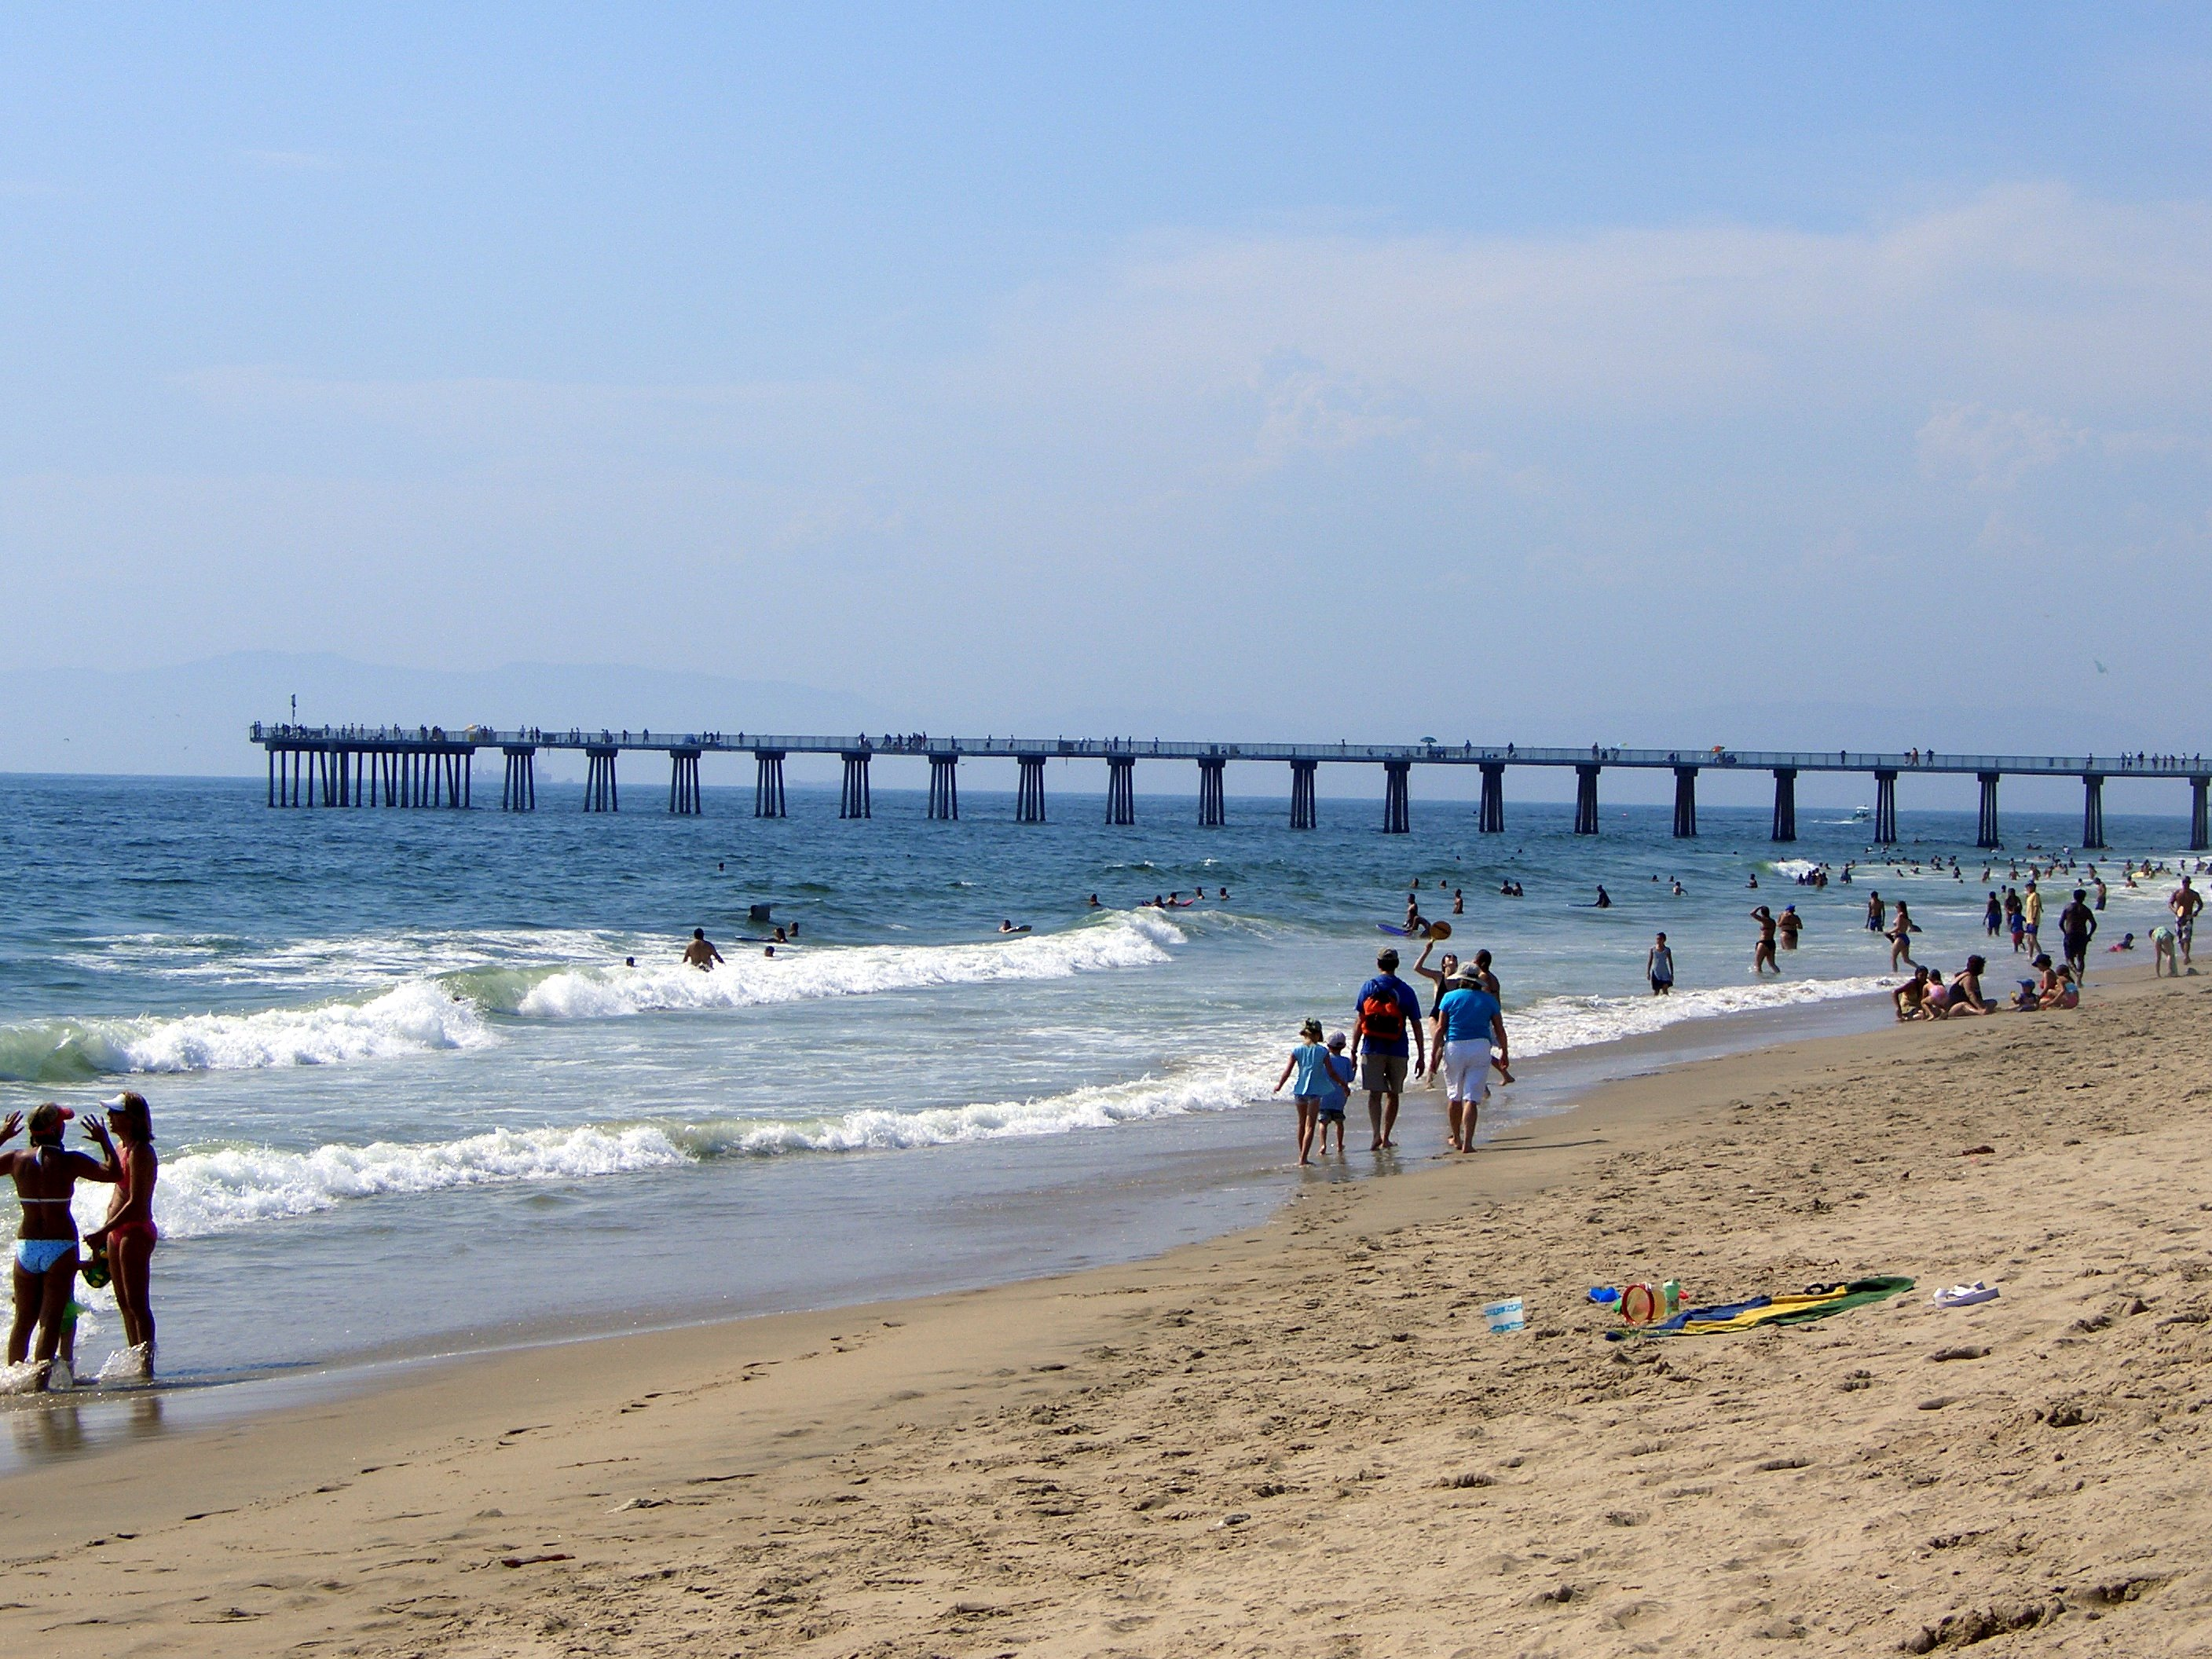 Hermosa beach on a summer day.